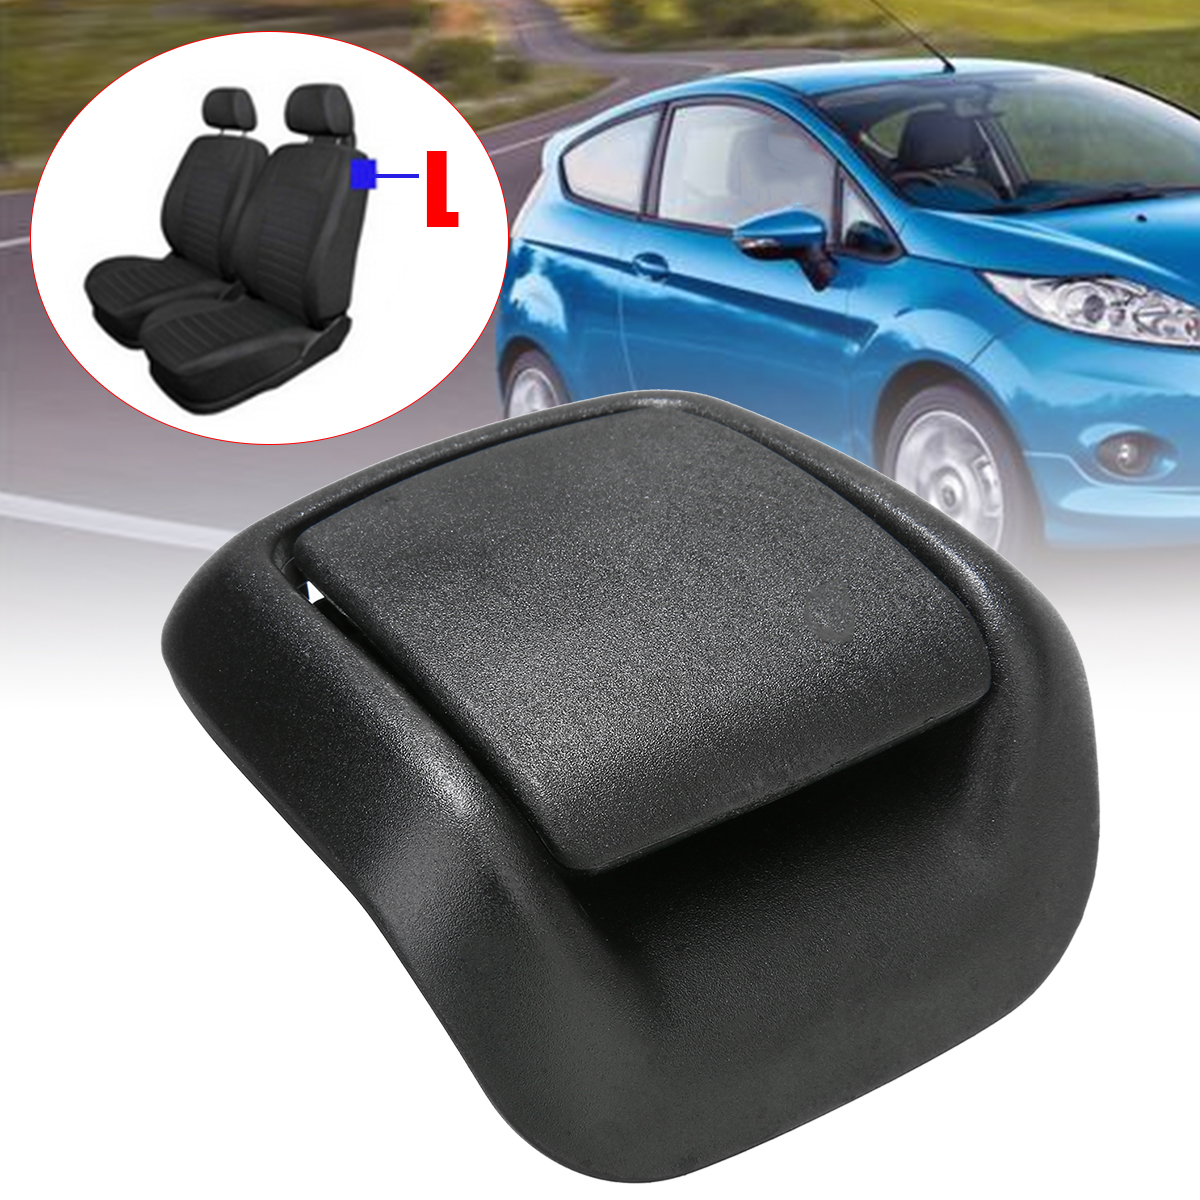 Mayitr 1pc Front Left Side Seat Tilt Handle Plastic 1417521 For Ford Fiesta MK6 VI 3 Door 02-08